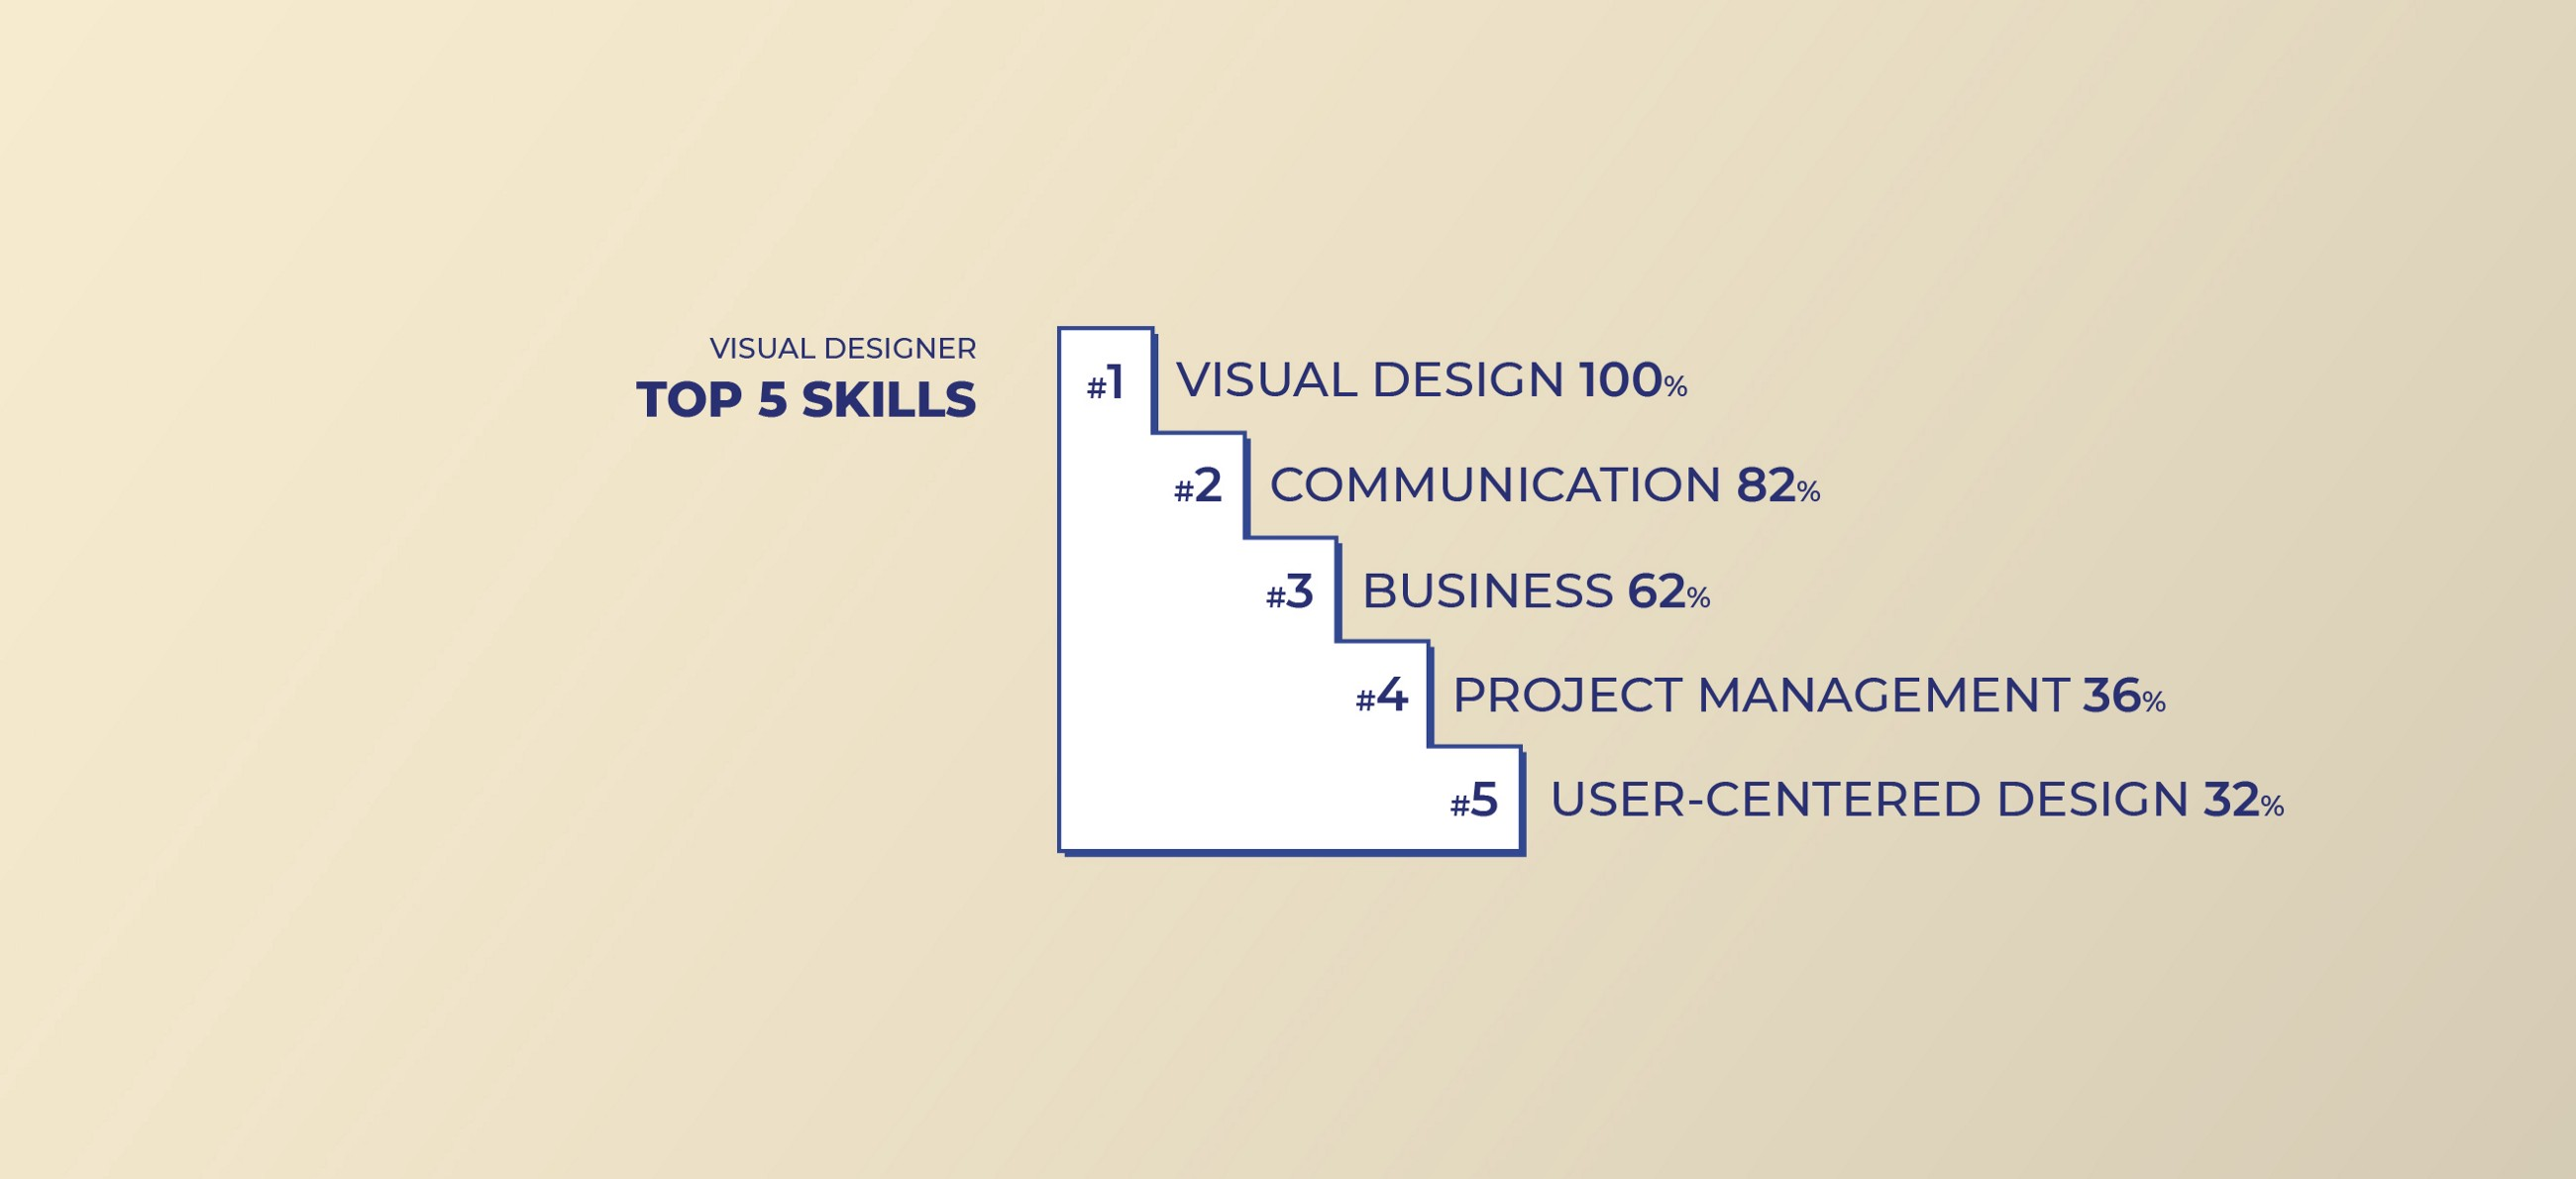 Top 5 skills for Visual Designers: Visual Design, Communication, Business, Project Management and User-centered design.